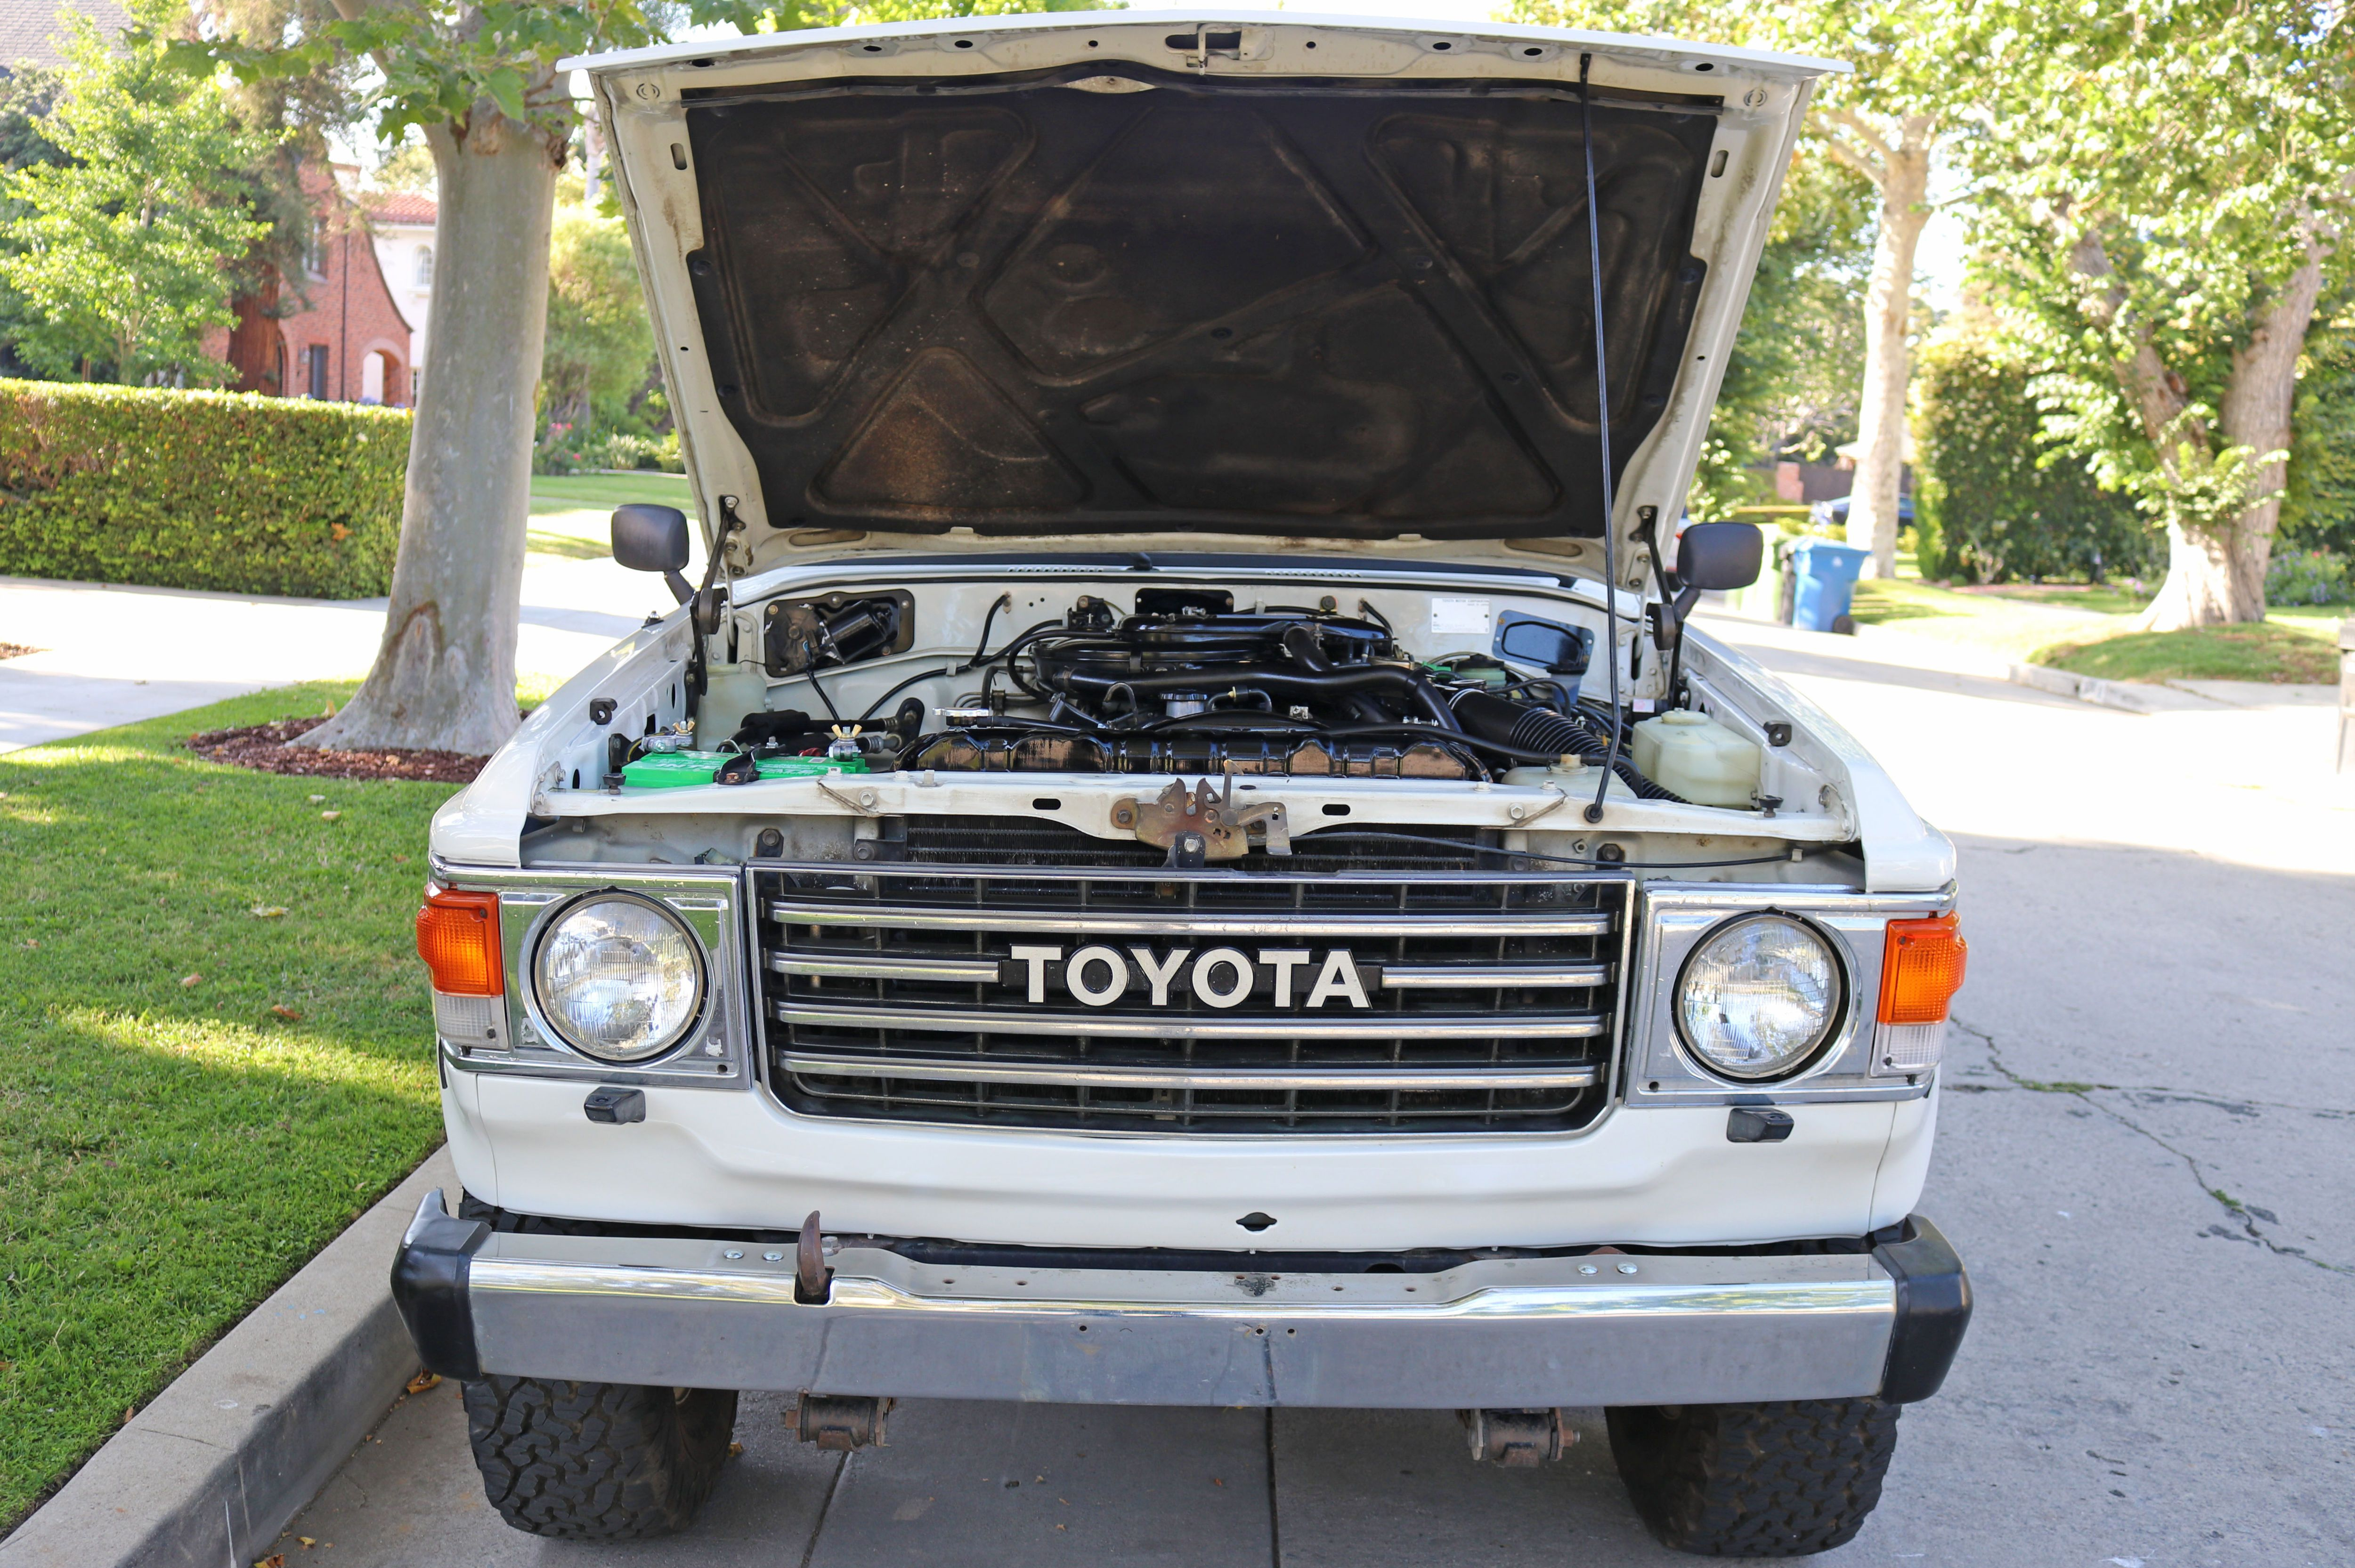 Top 5 Things You MUST Do When Test Driving a Toyota Land Cruiser FJ60  (Buyers Guide)